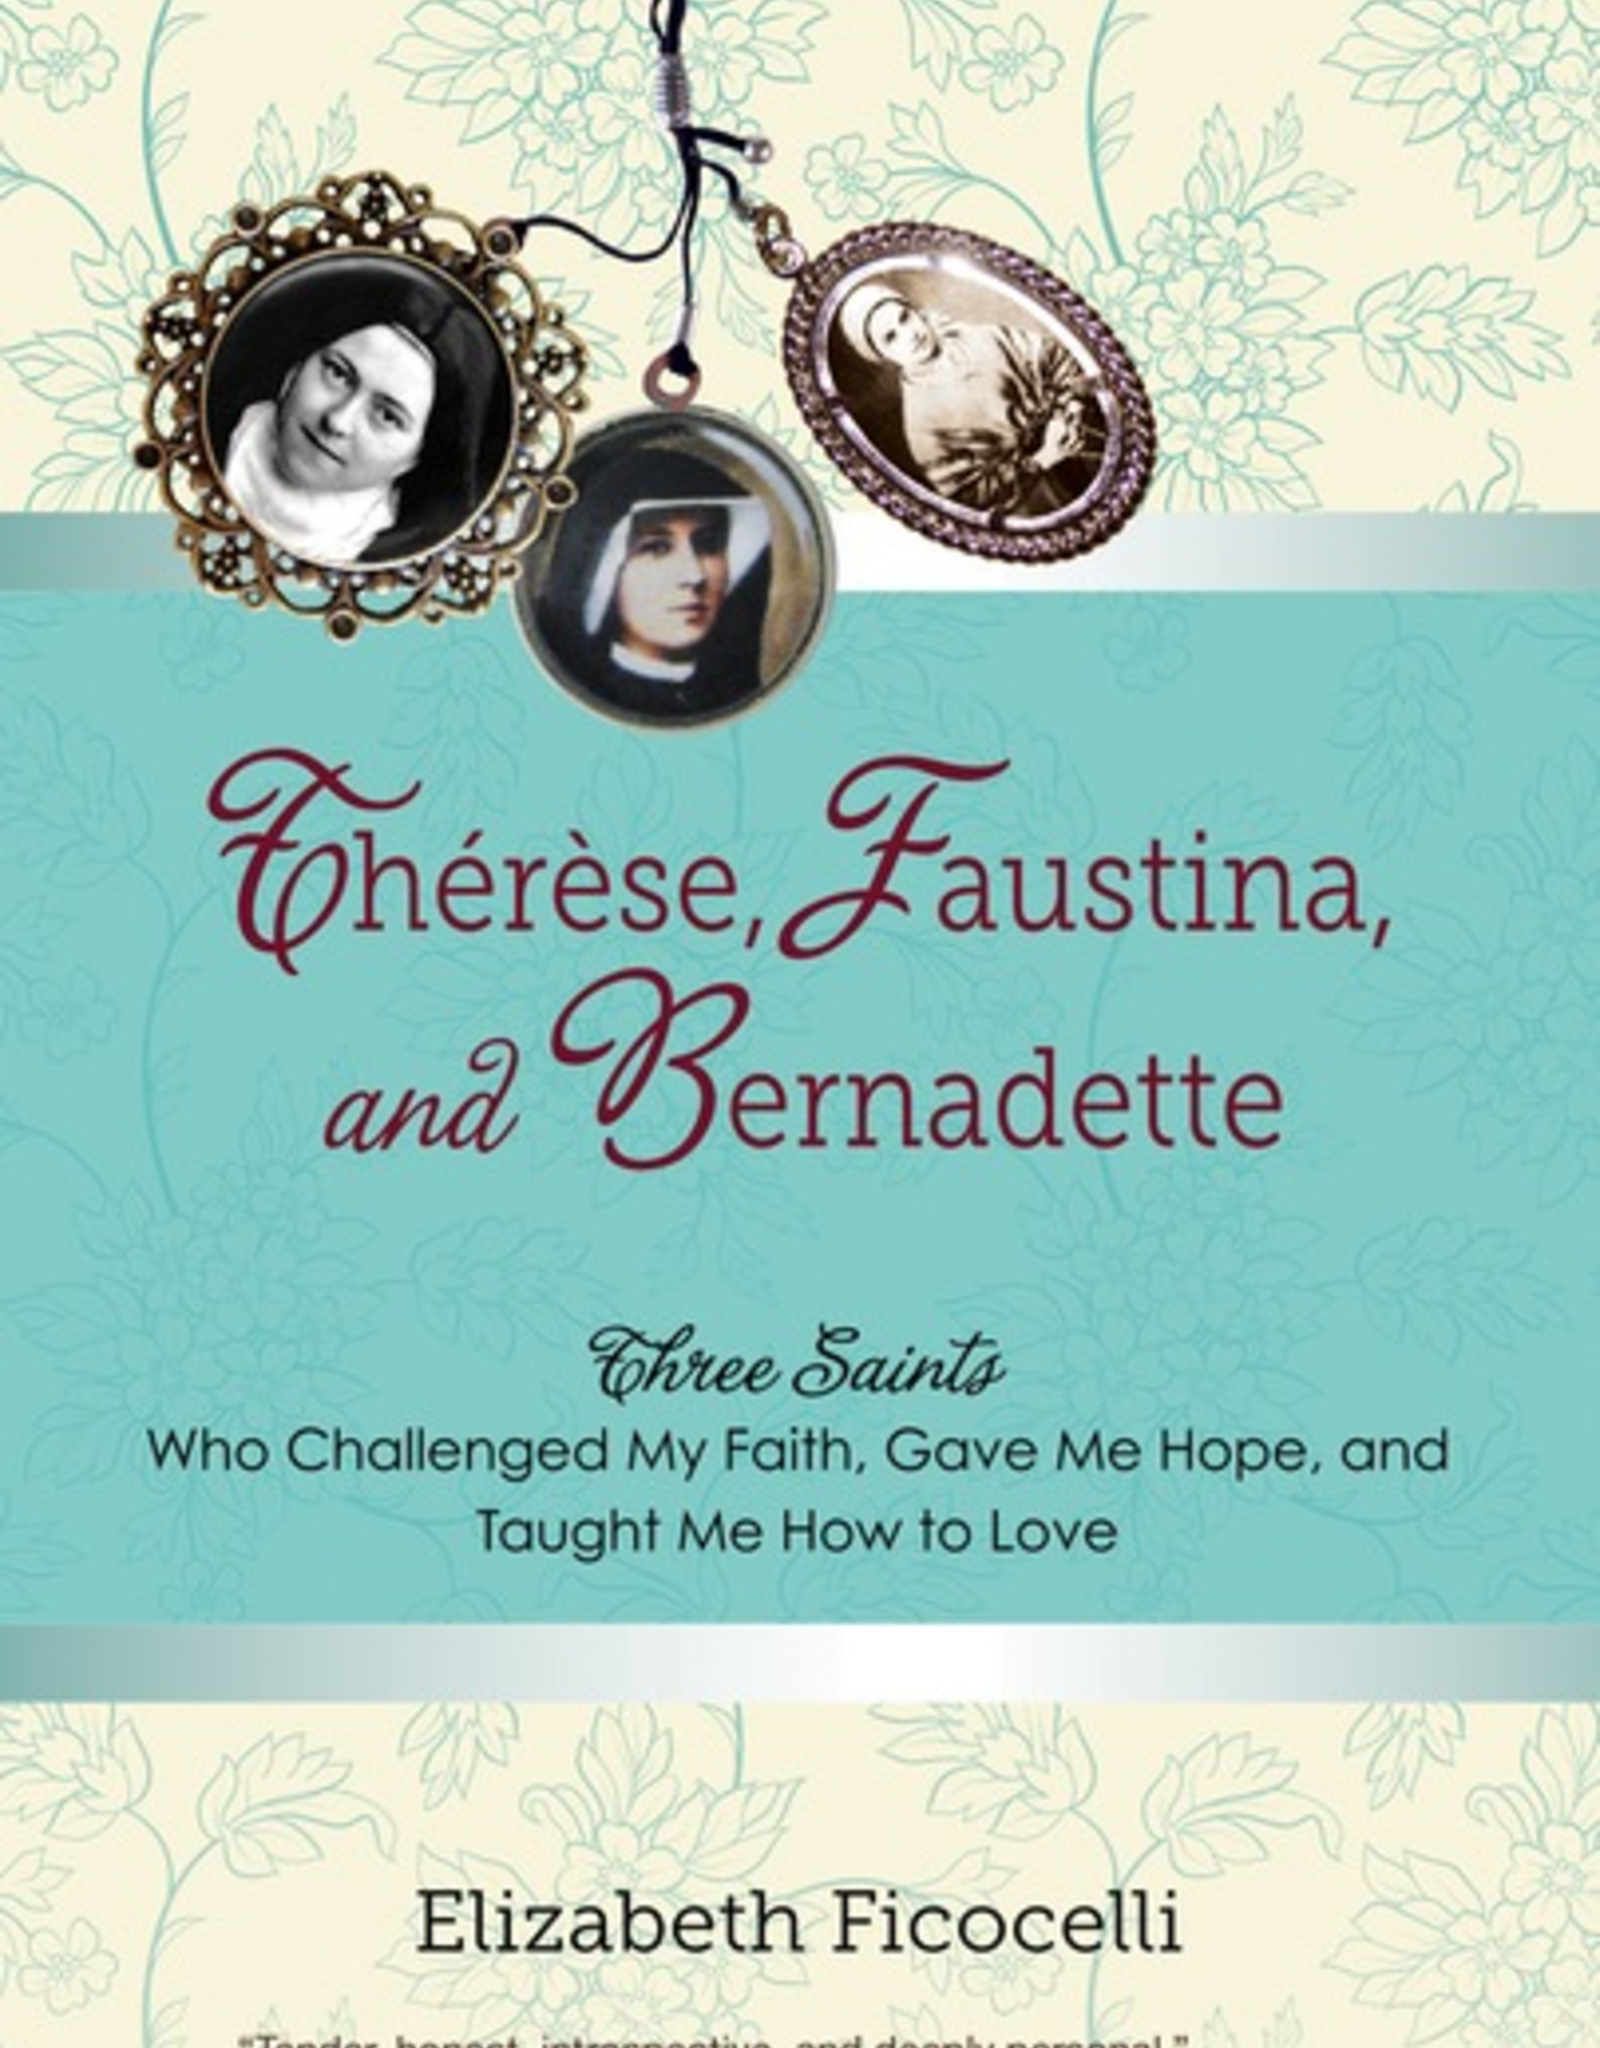 Ave Maria Press Therese, Faustina and Bernadette, by Elizabeth Ficocelli (paperback)